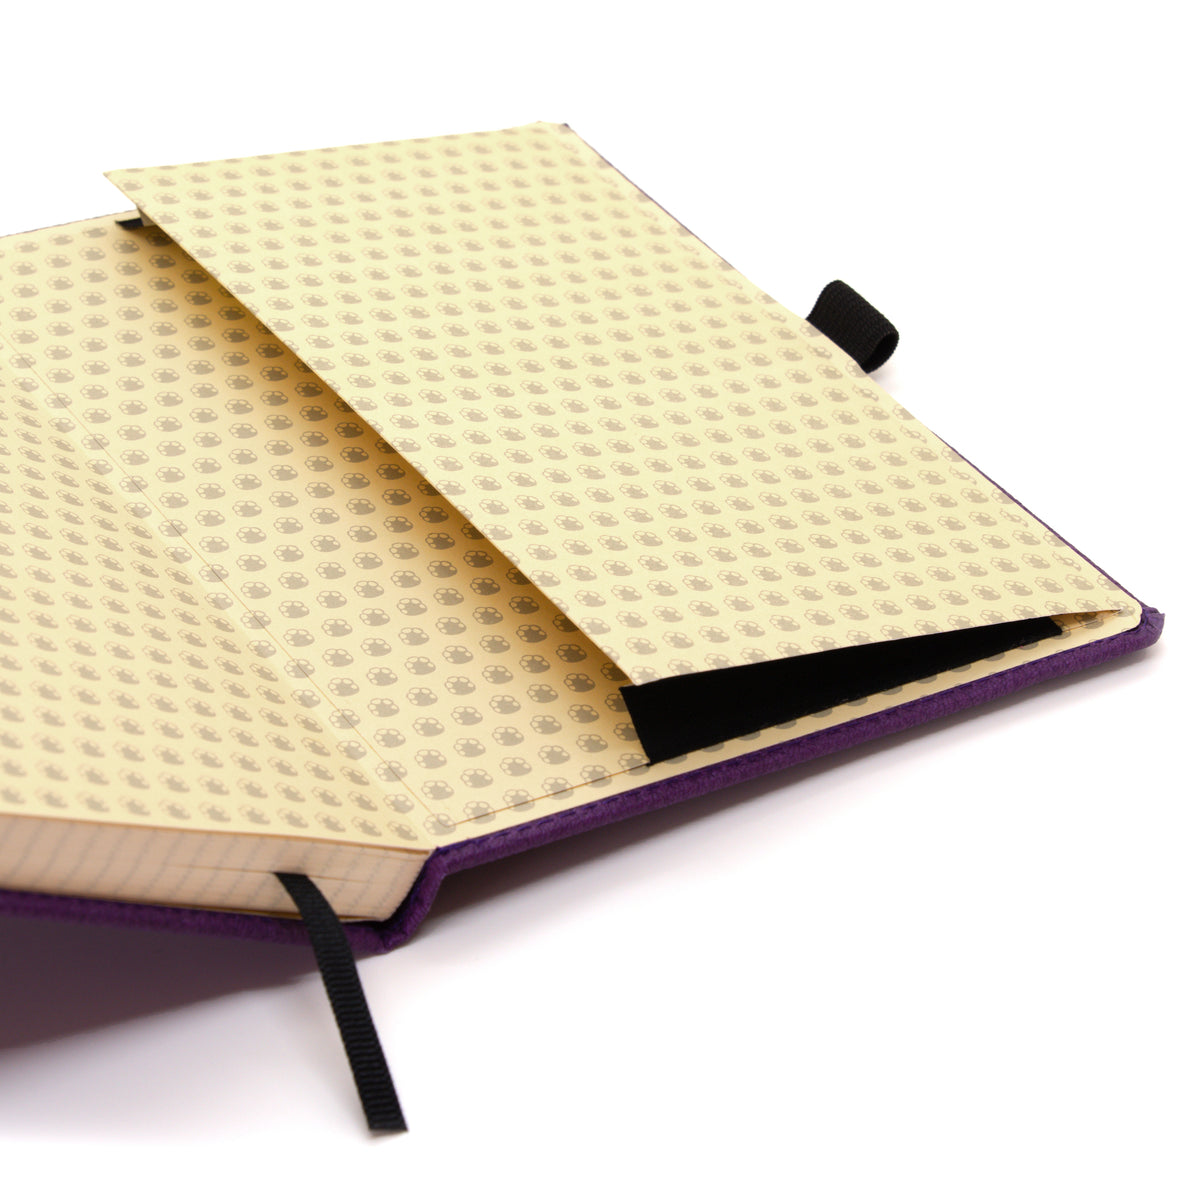 A5+ DOT GRID NOTEBOOK - WILDLIFE COLLECTION - PURPLE HIPPO